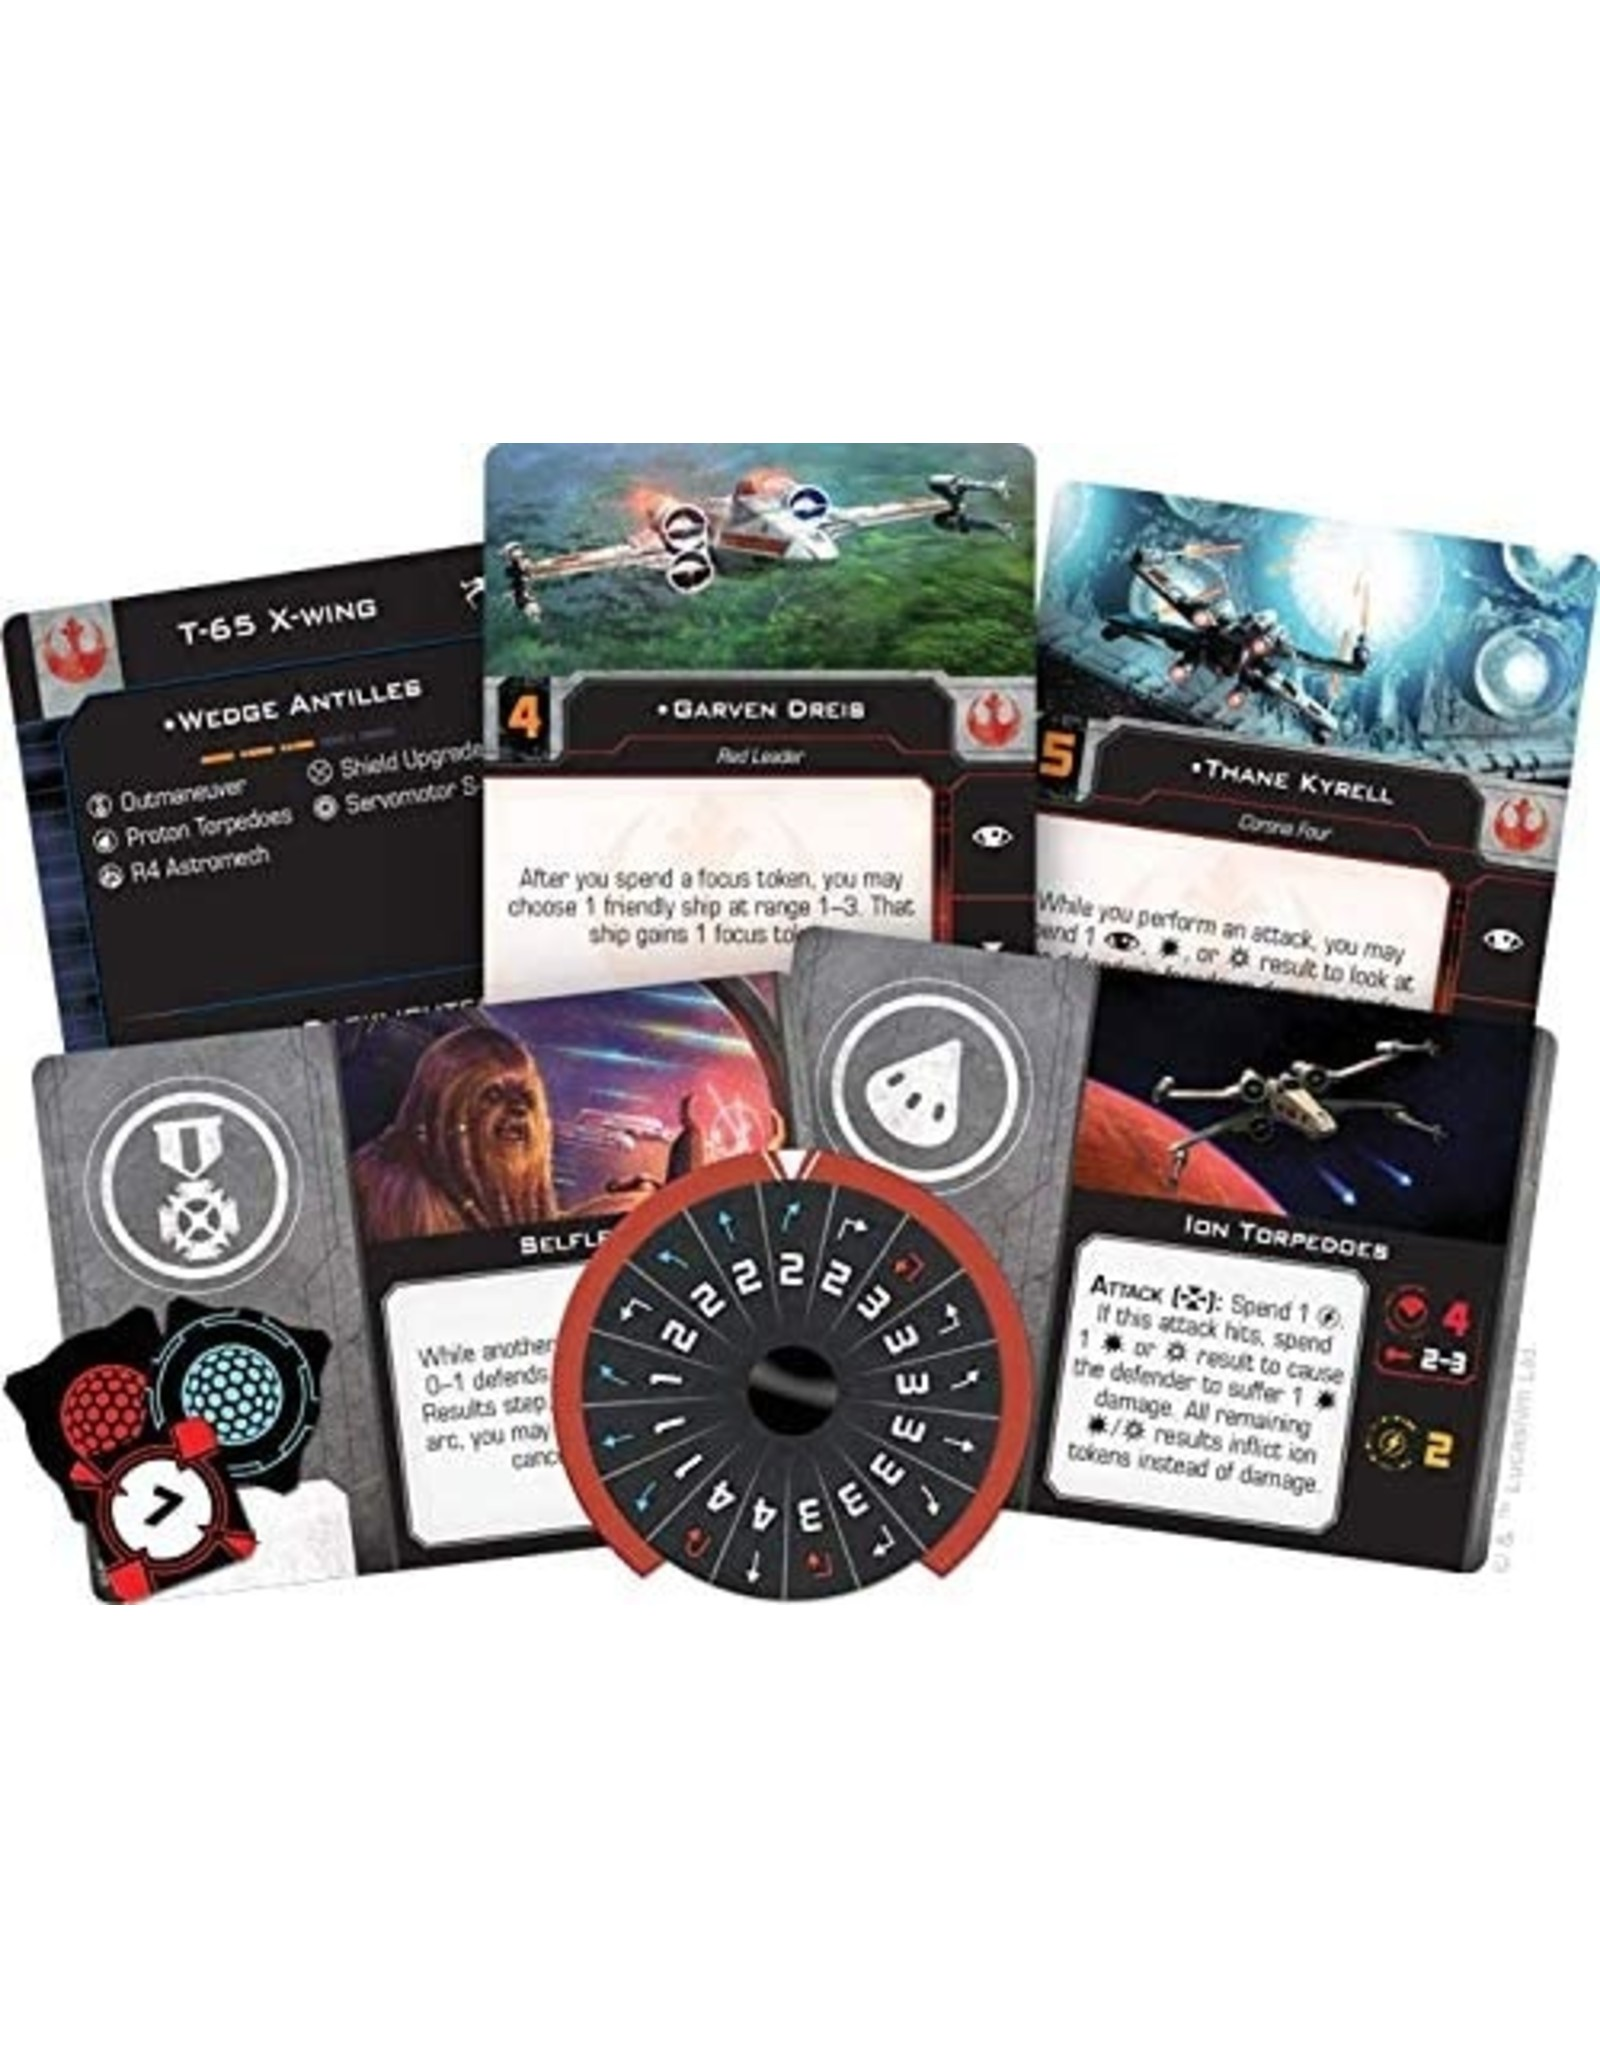 Star Wars X-Wing: 2nd Edition - T-65 X-Wing Expansion Pack